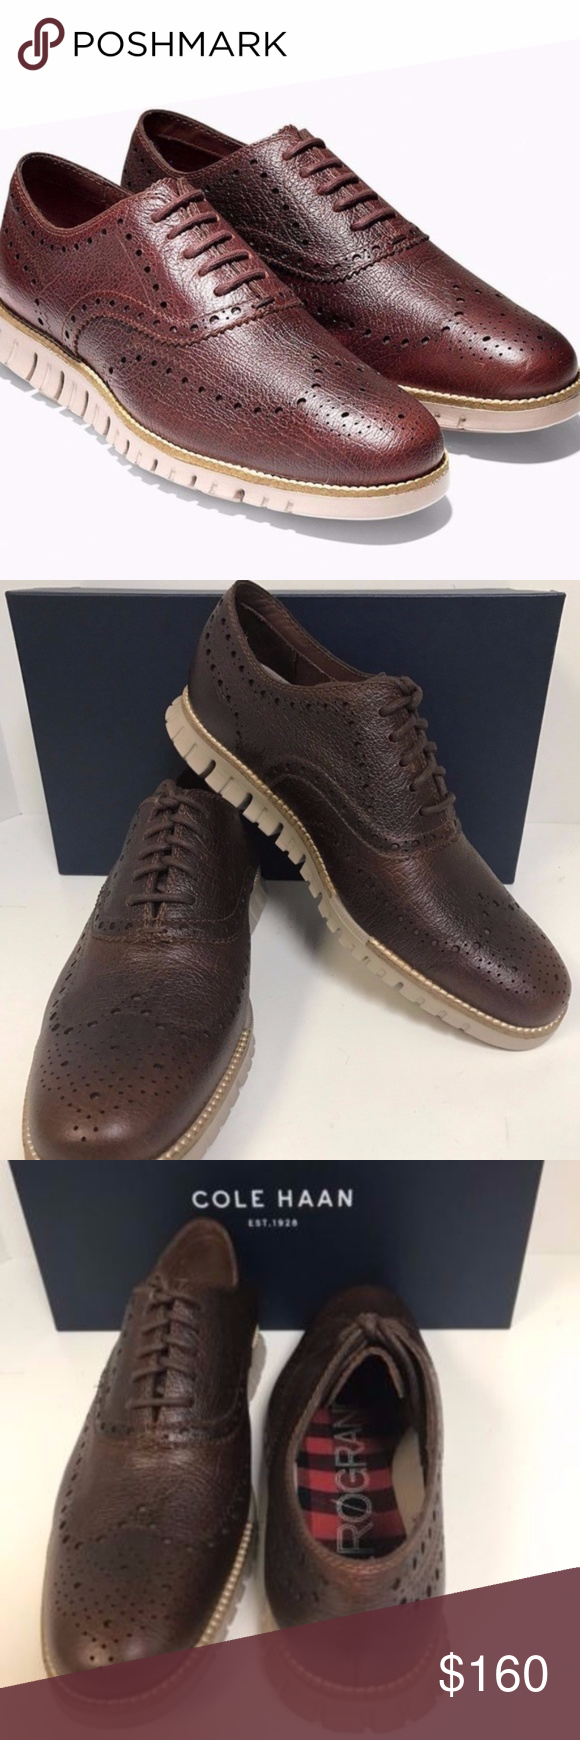 Wide shoes for men, Cole haan zerogrand